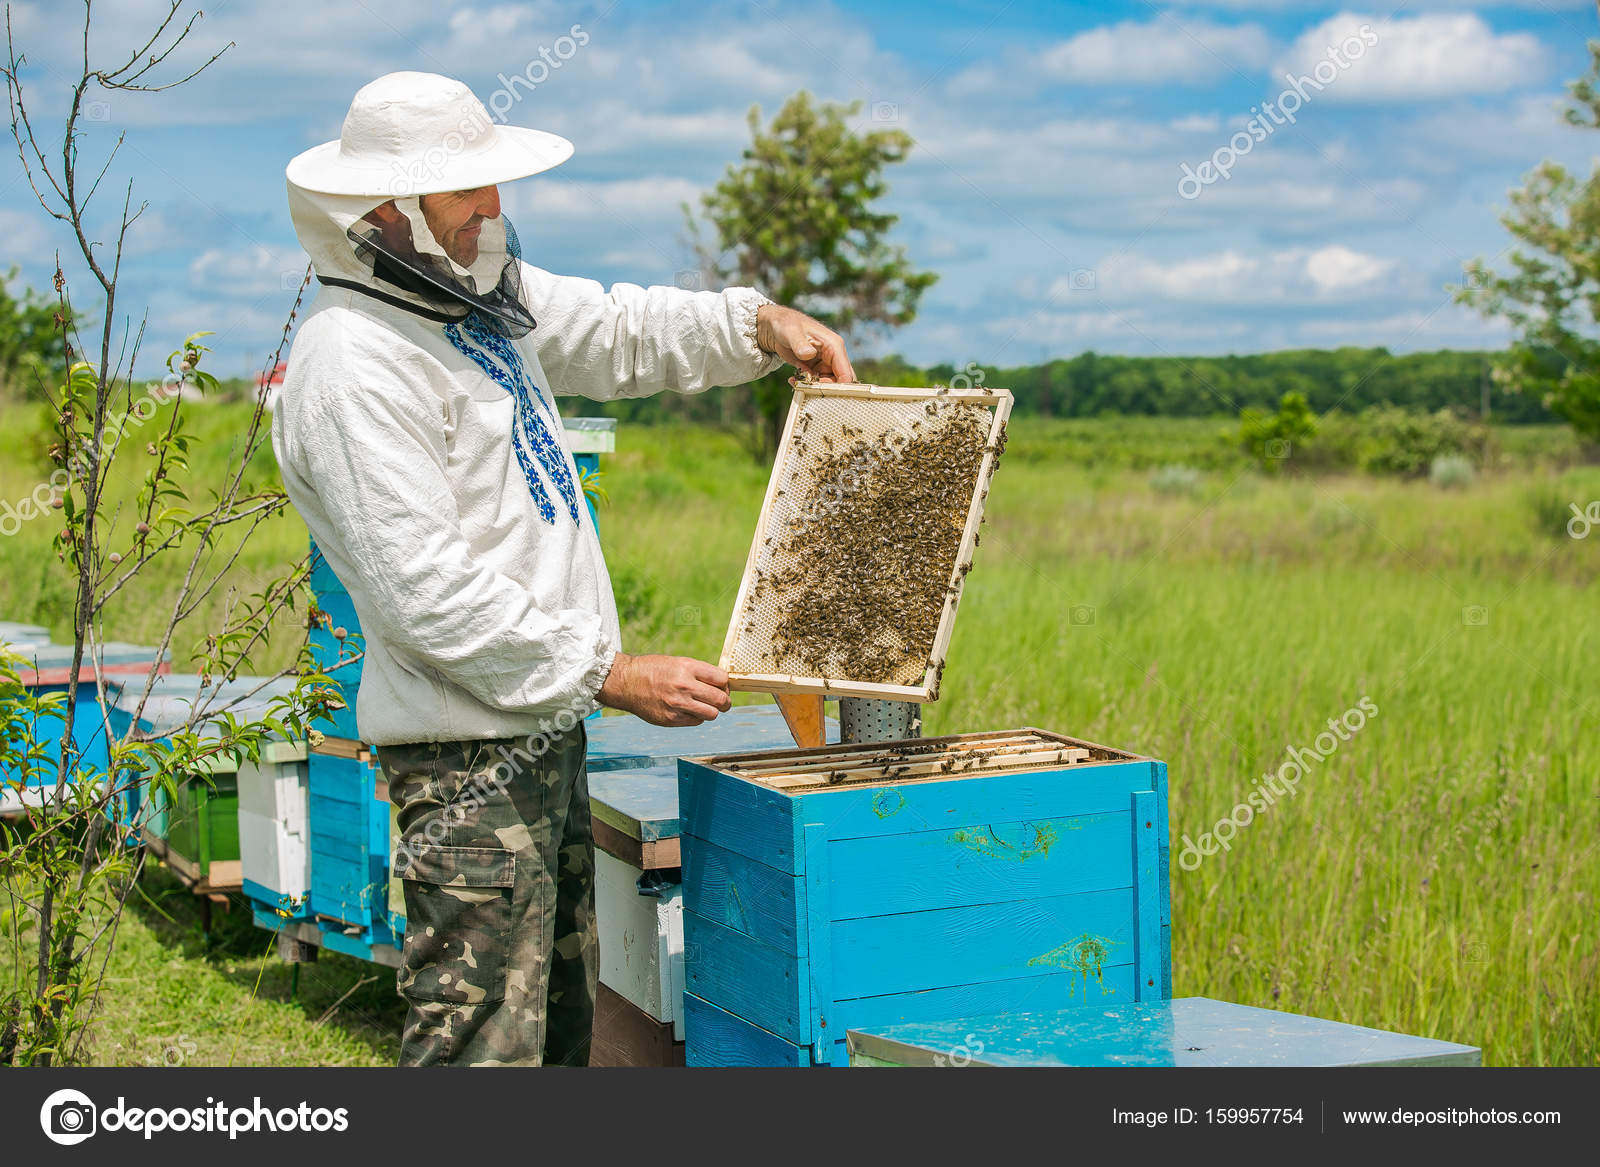 Beekeeper is working with bees and beehives on the apiary. Frames of ...